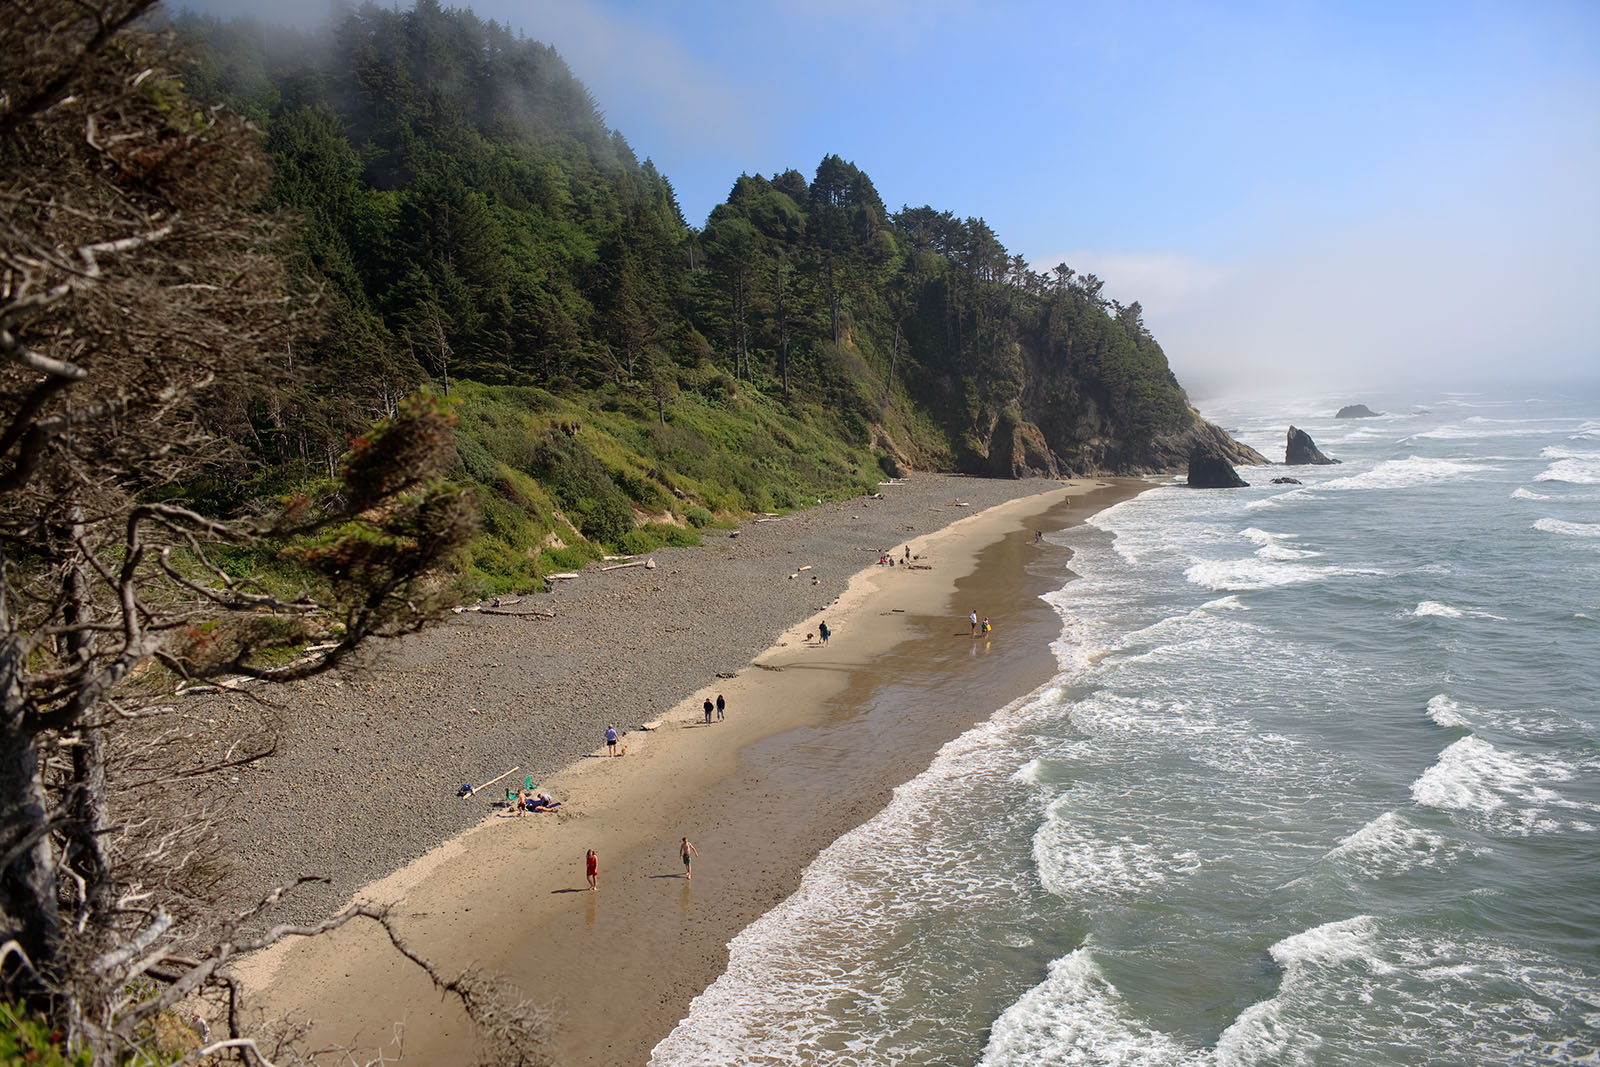 cannon beach dating site Nestled between the majestic pacific ocean and the coast range, cannon beach is an upscale yet relaxed community with a thriving arts and tourist culture.